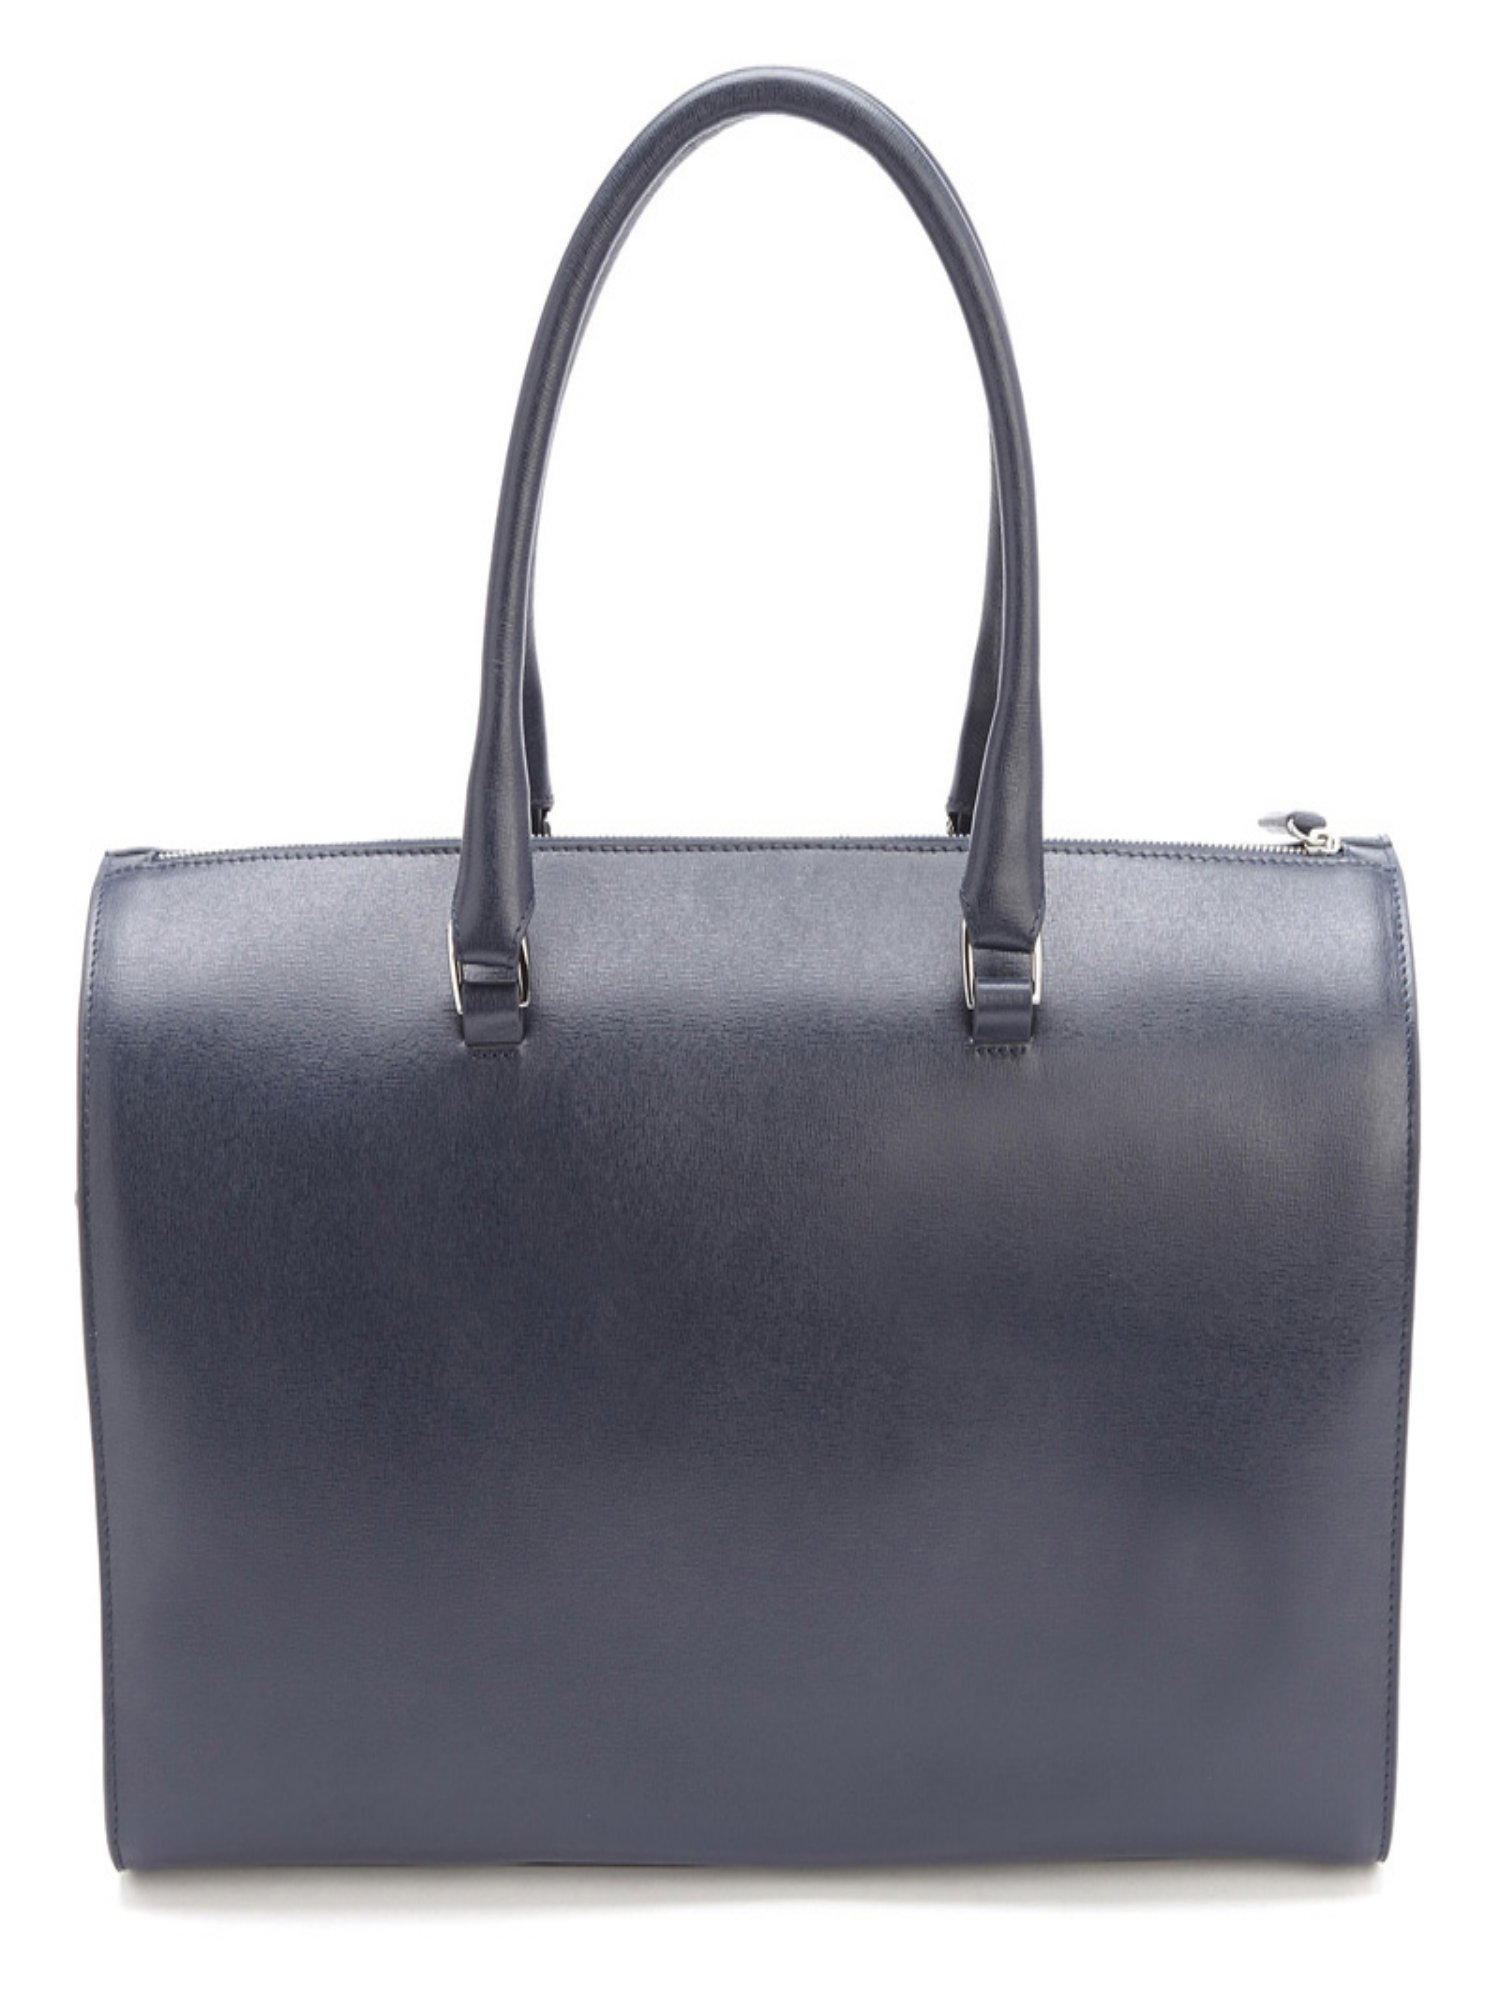 Royce RFID Blocking Carry On Travel Duffle Bag by Royce Leather